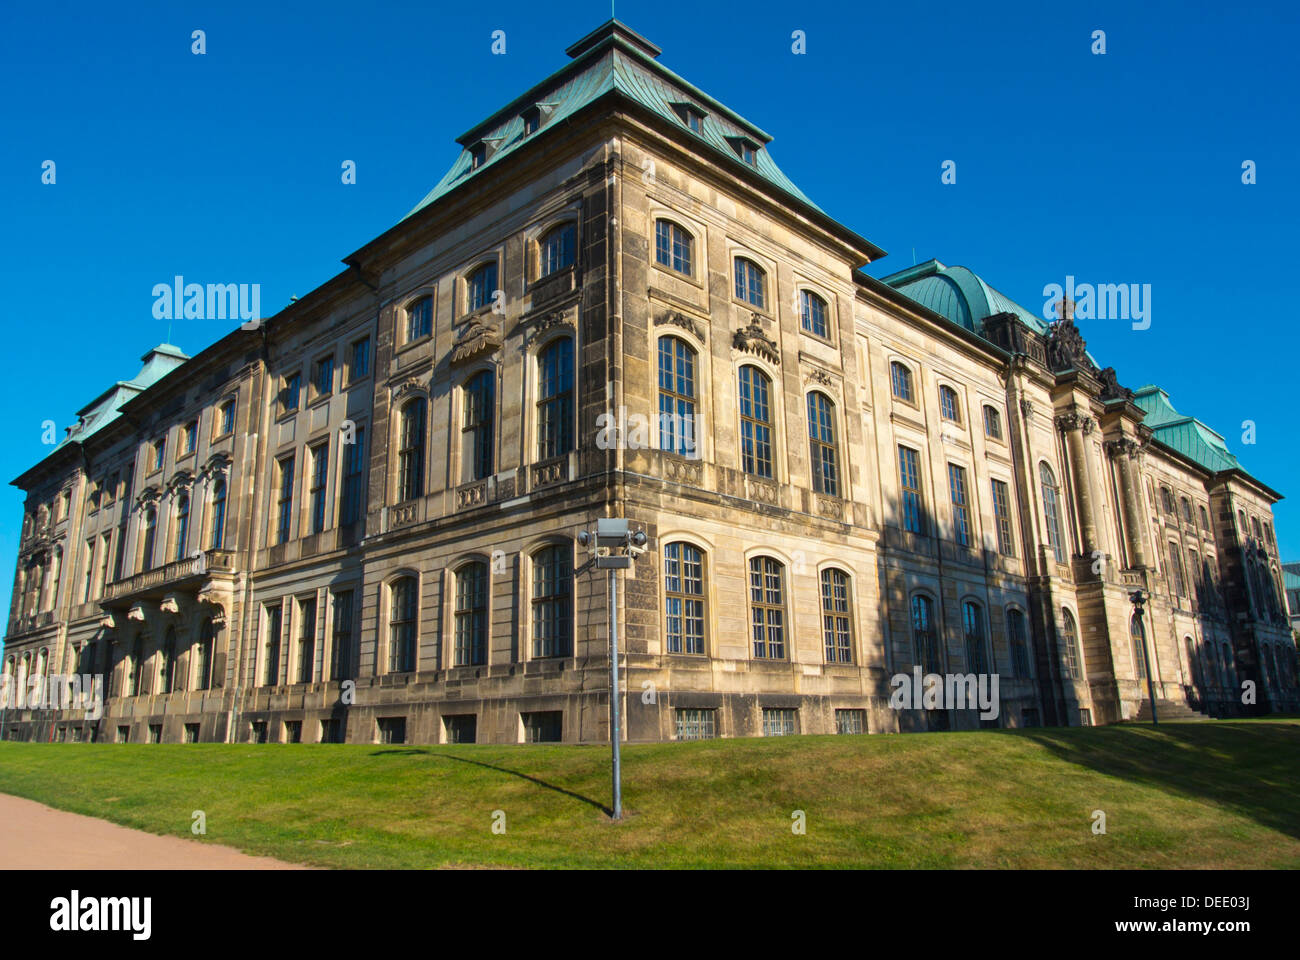 Japanisches Palais the Japanese Palace housing Ethnology museum Neustadt the new town Dresden Germany central Europe - Stock Image